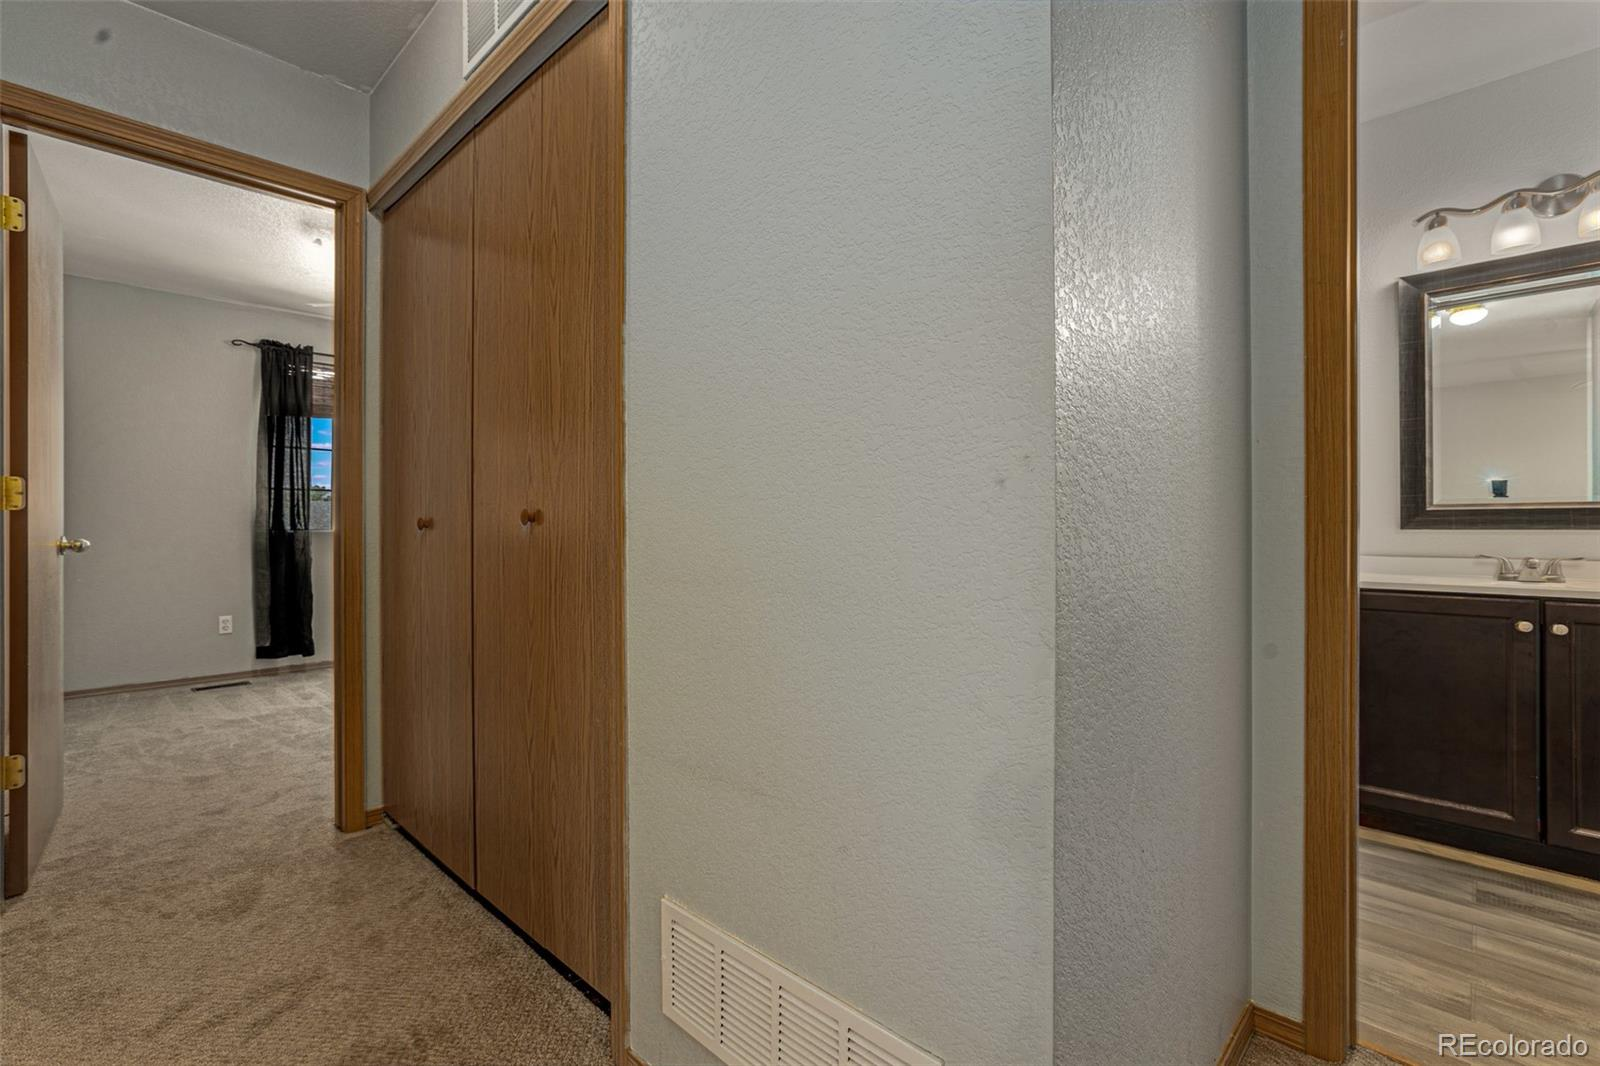 MLS# 6387968 - 21 - 7580 Middle Bay Way, Fountain, CO 80817